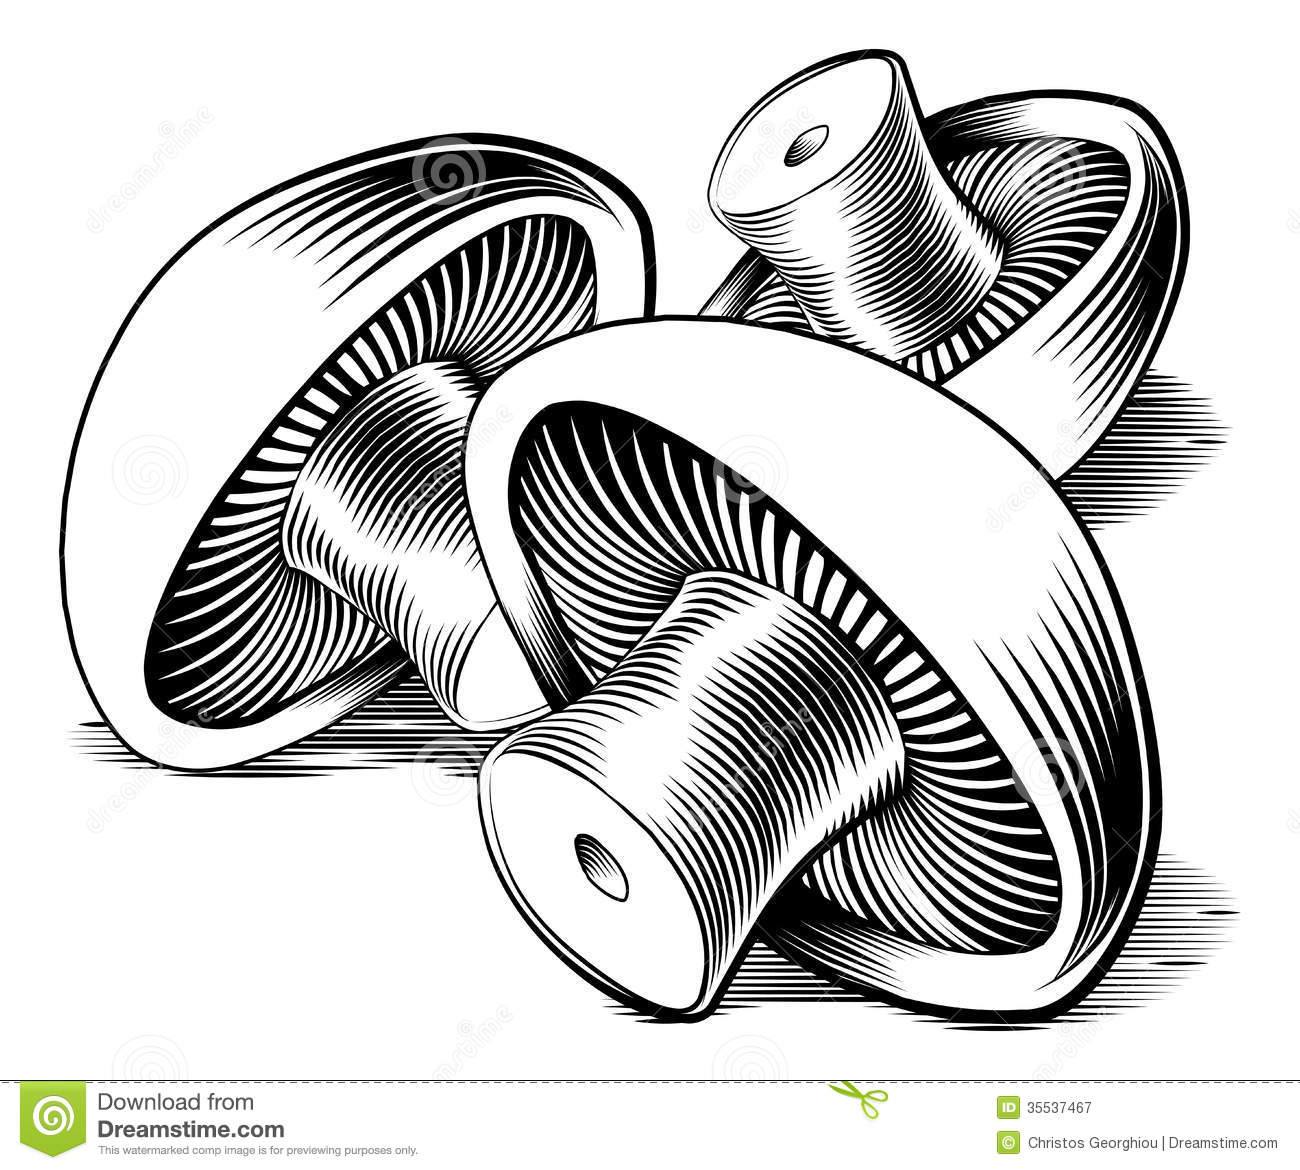 Classic Retro Illustration: Vintage Retro Woodcut Mushrooms Stock Vector